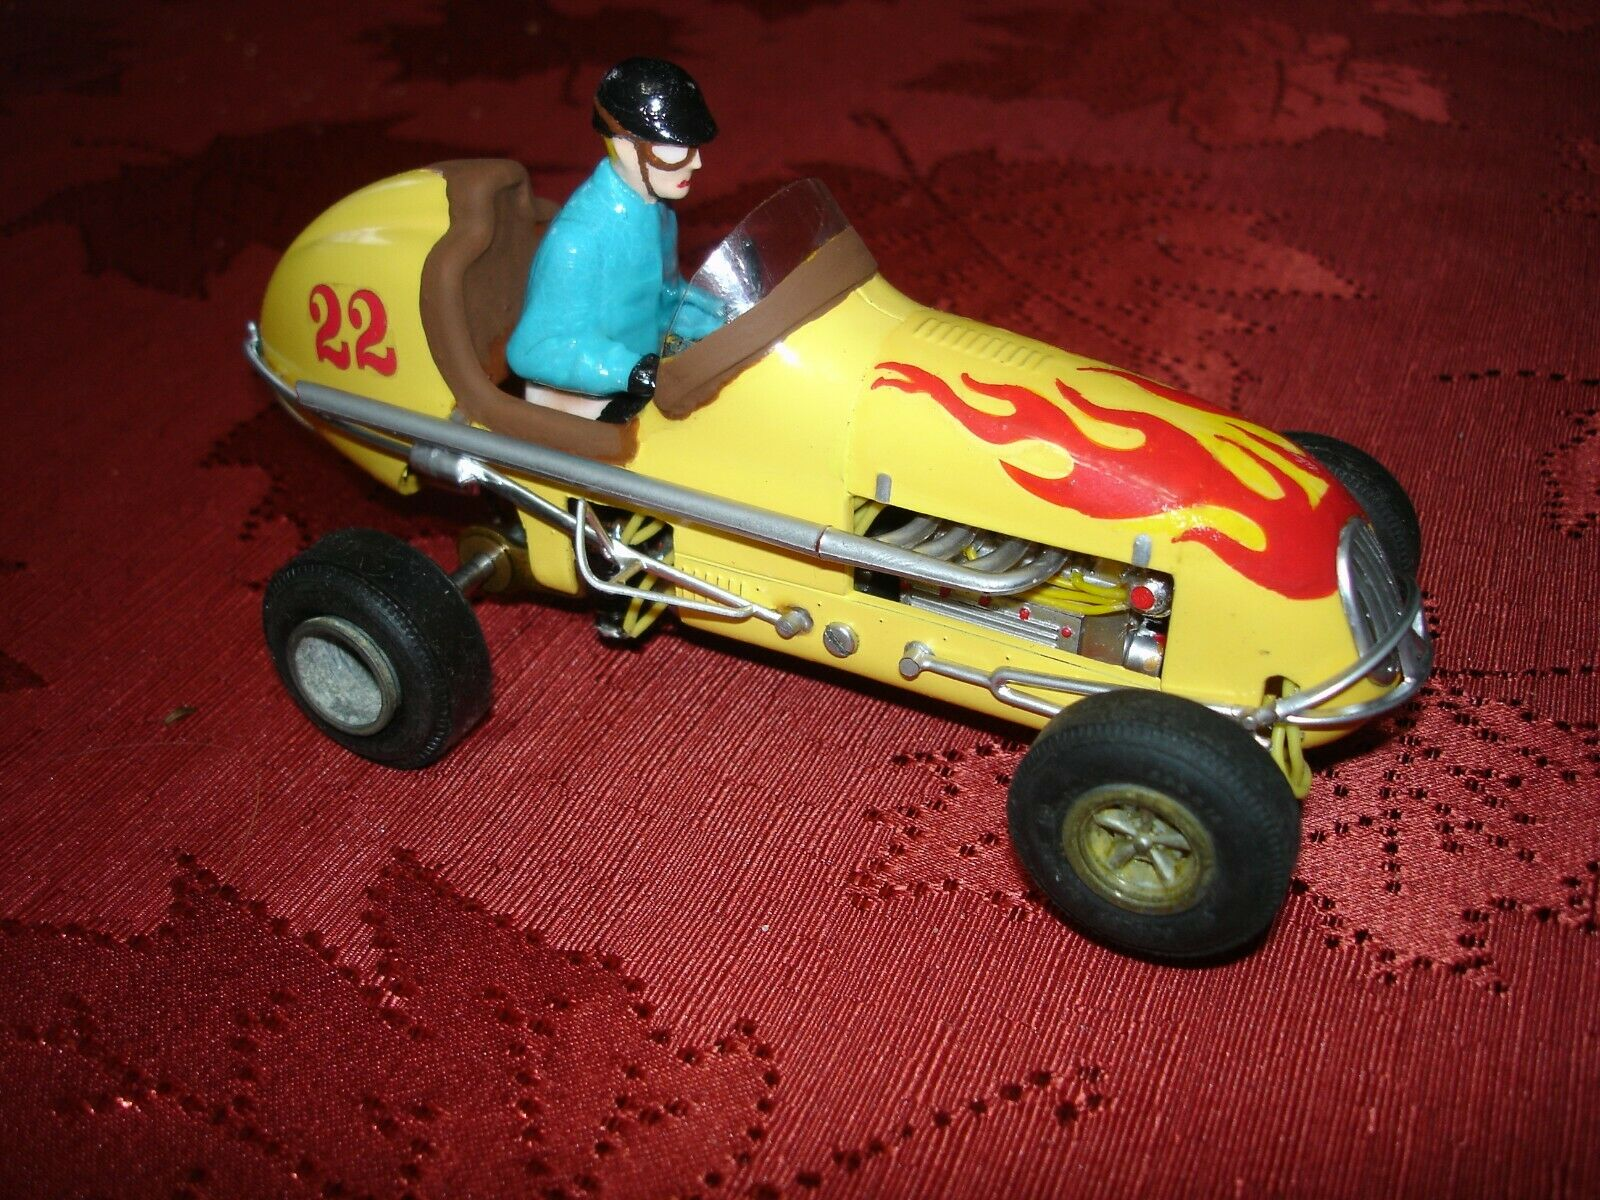 *SOLD* Midget Racer Monogram Yellow Lightening V Racing Special – Slot Car 1/24 Scale